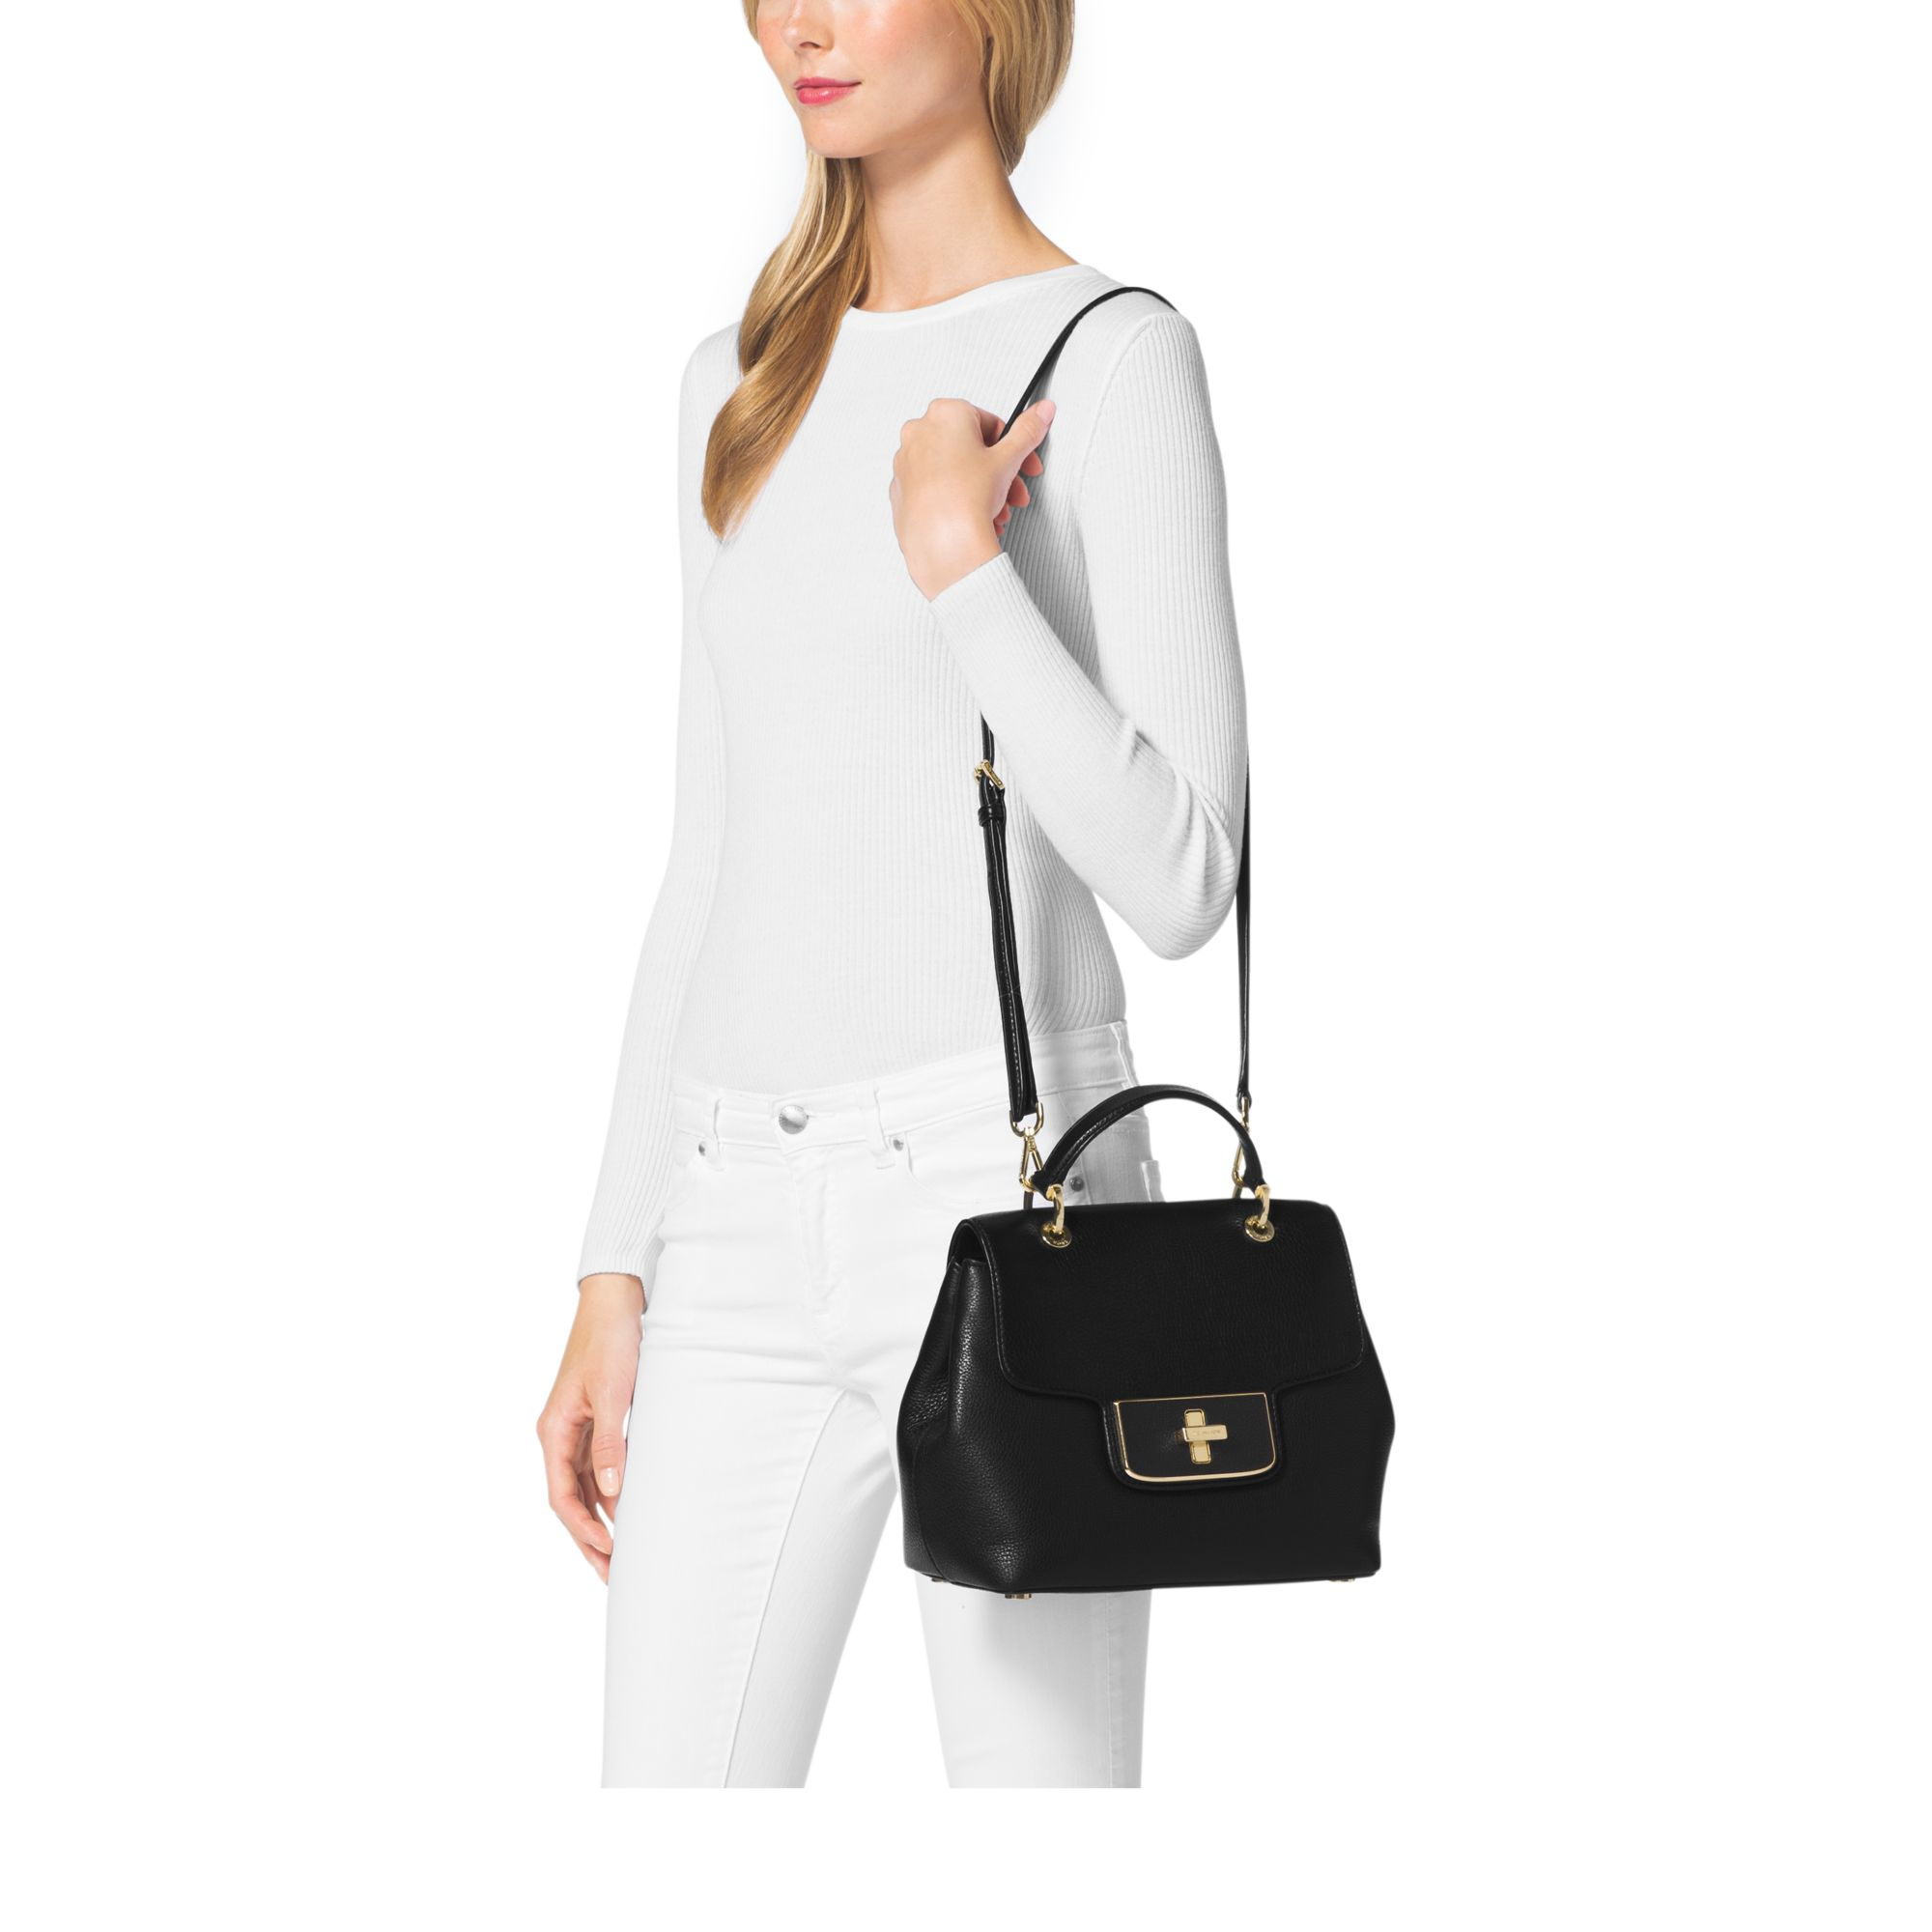 Lyst - Michael kors Emery Pebbled-Leather Satchel in Black